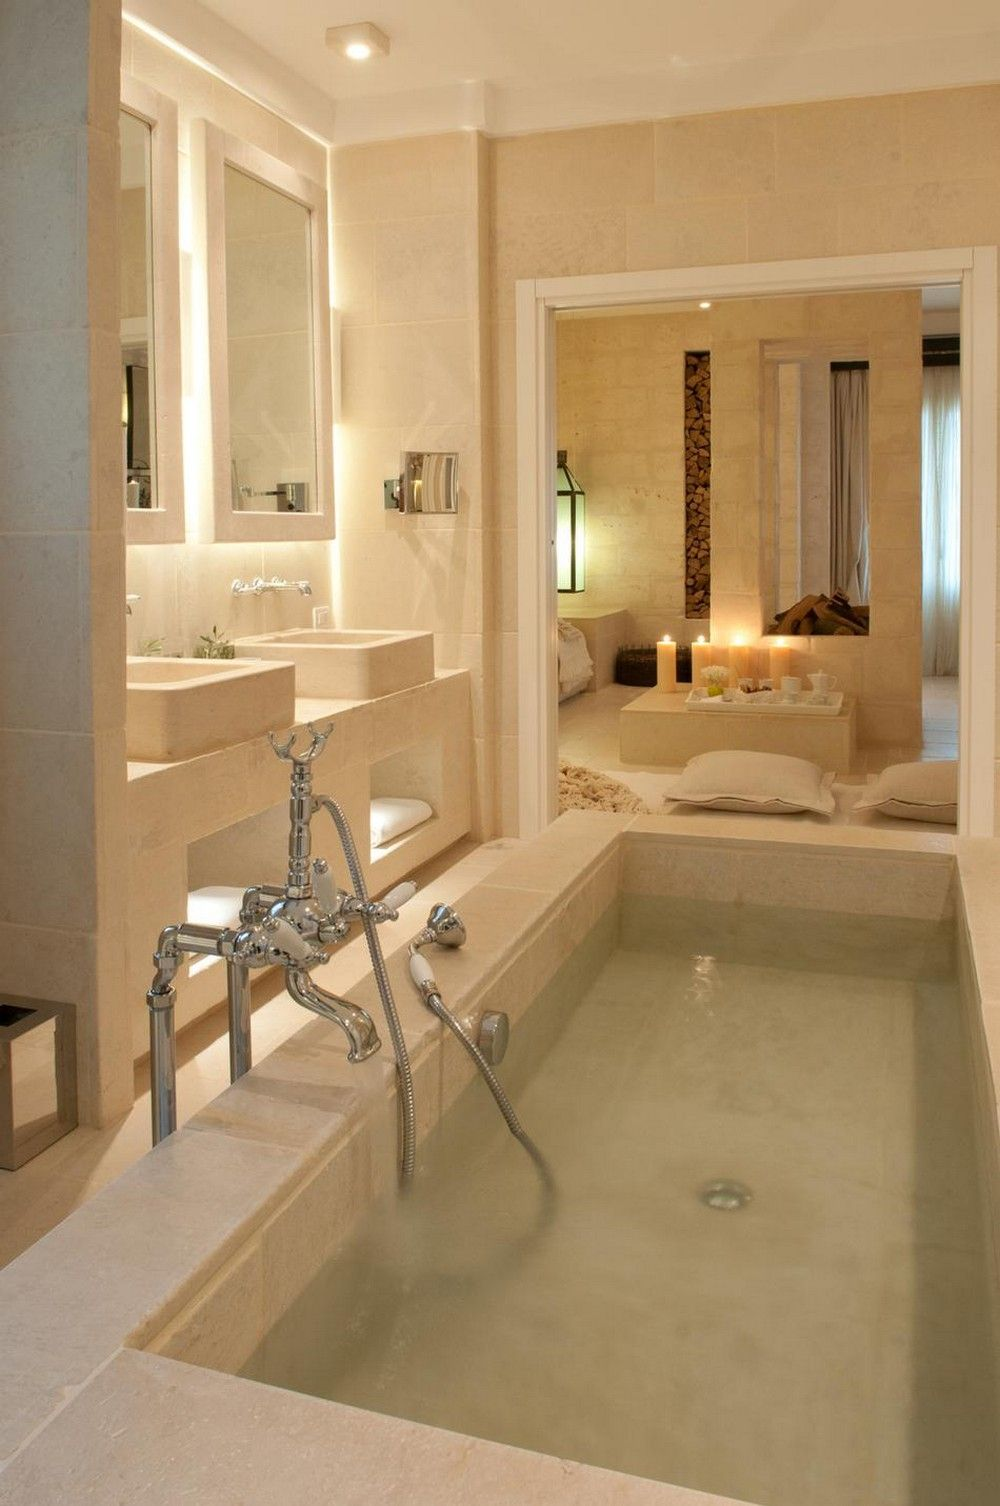 25 Create a Luxurious Spa-Like Bathroom At Home | Spa, Create and Bath